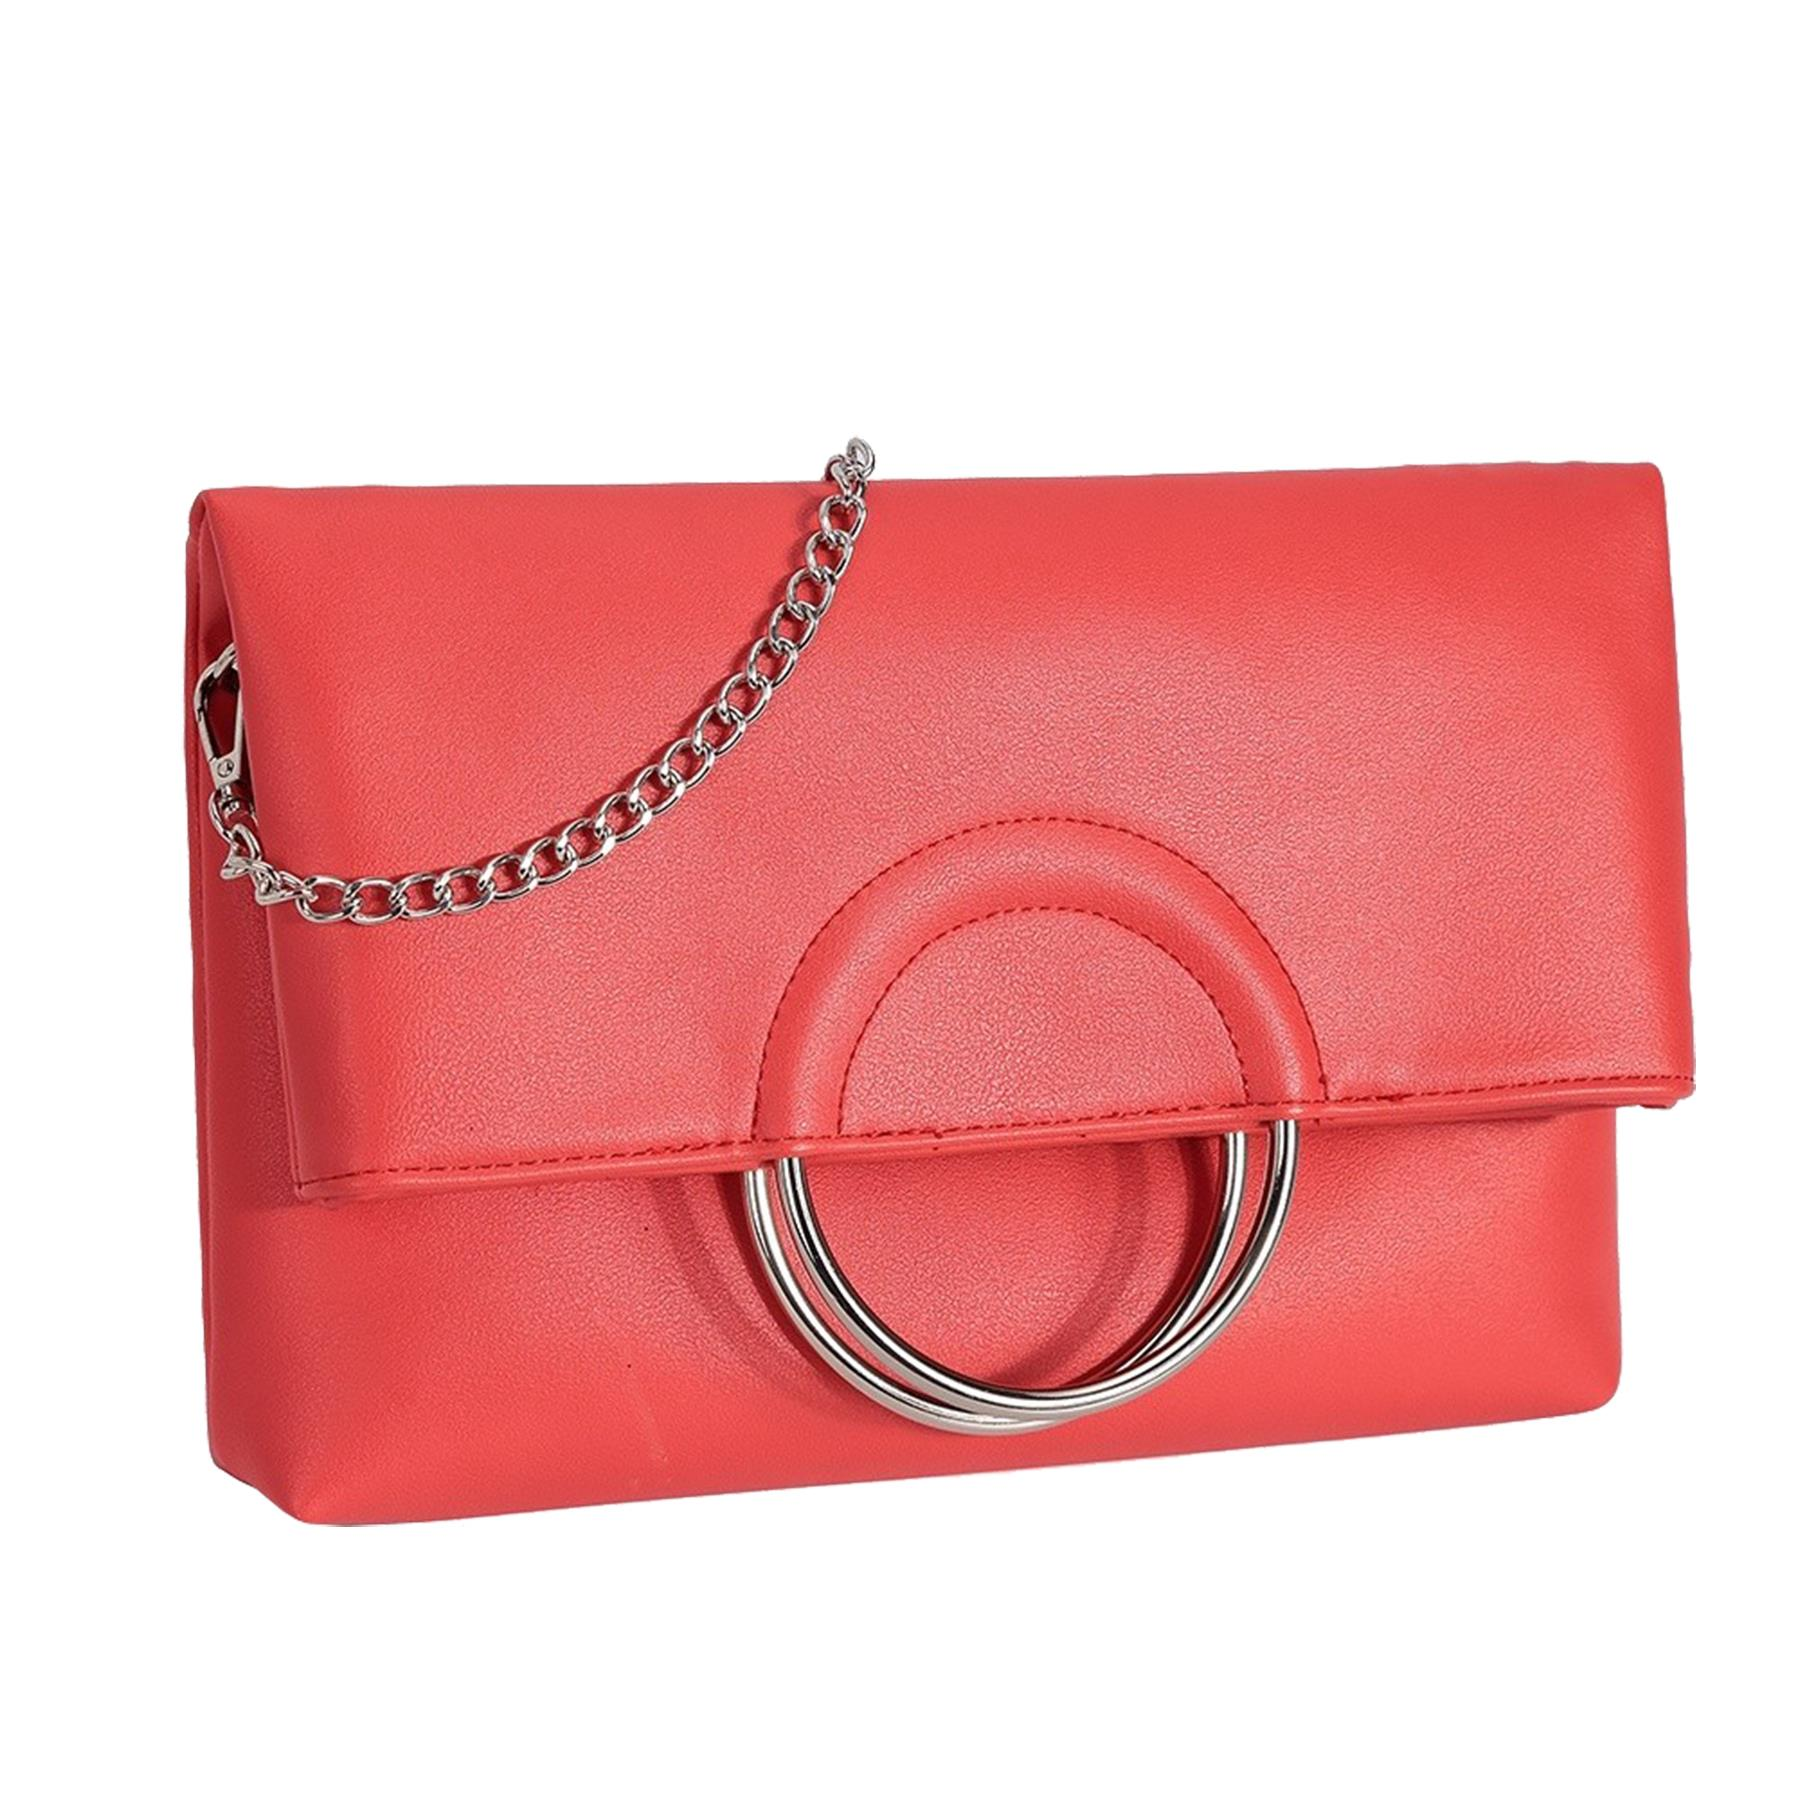 New-Women-s-Metallic-Ring-Top-Handles-Faux-Leather-Evening-Clutch-Bag thumbnail 6